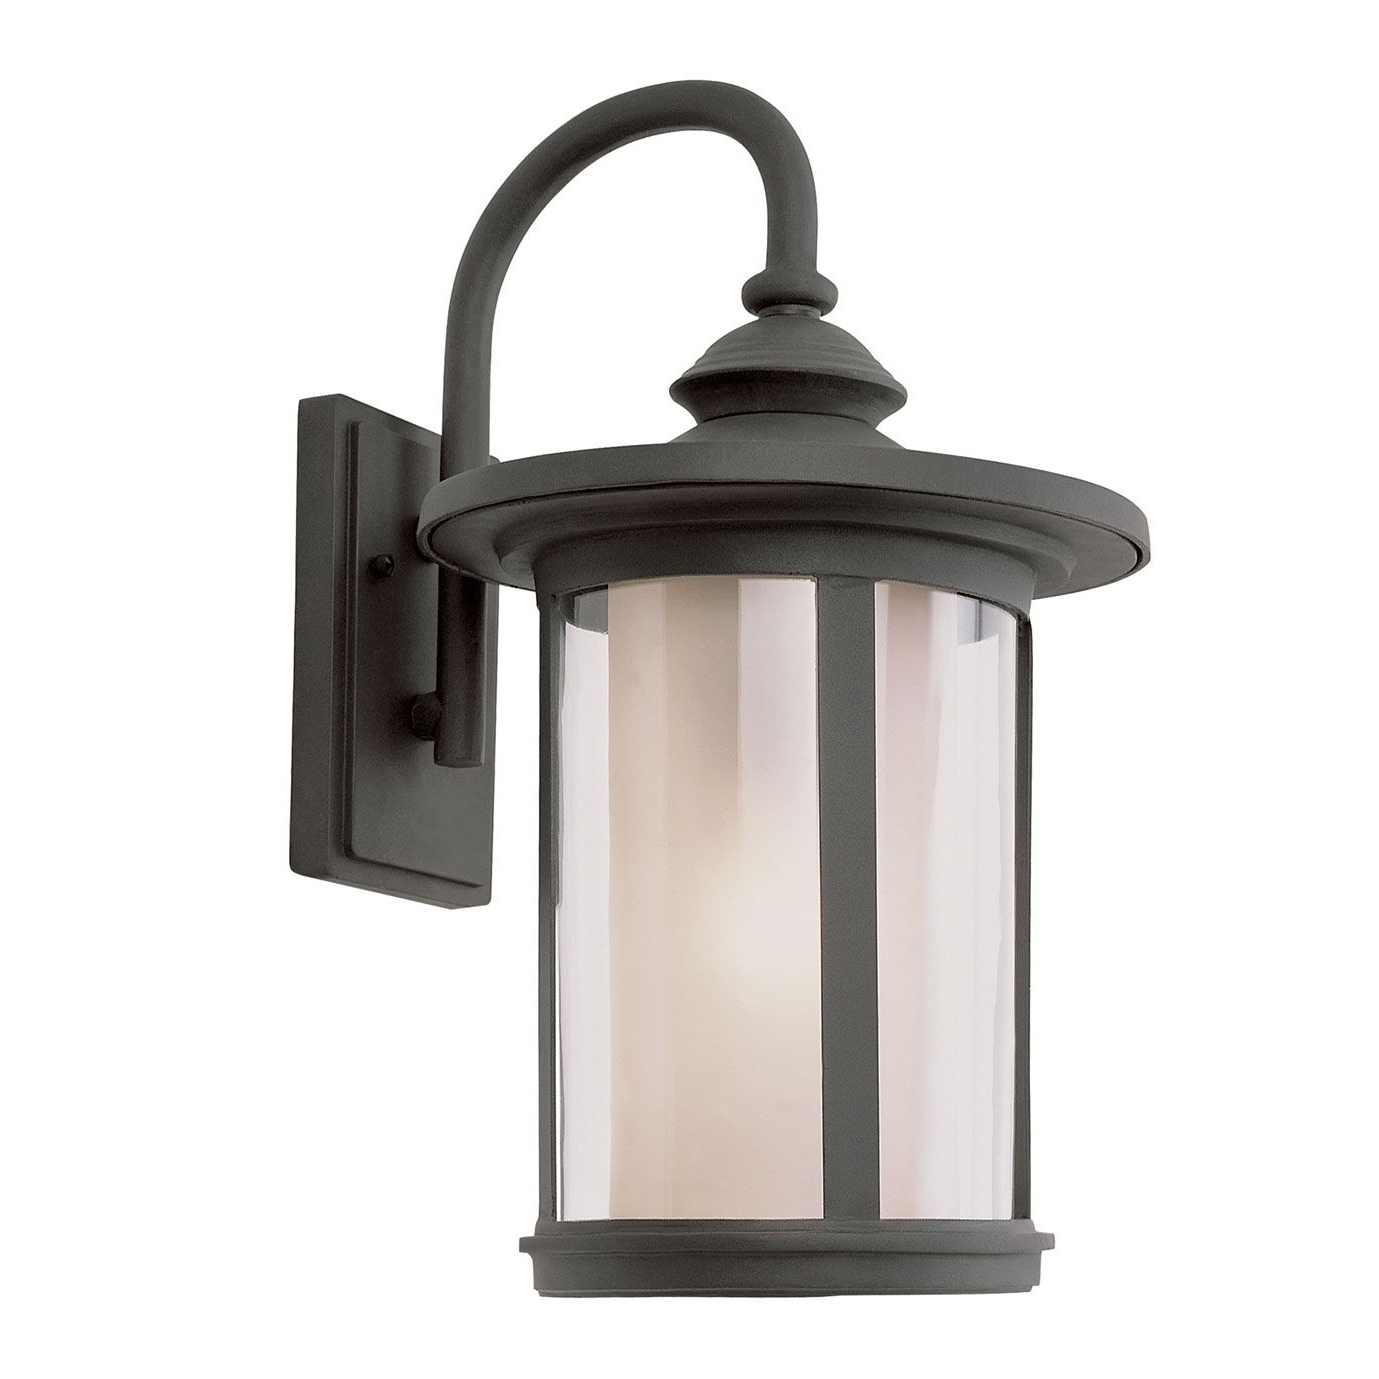 P> Chimney Stack Outdoor Wall Lantern Features Tea Stain Clear Pertaining To Fashionable Outdoor Weather Resistant Lanterns (View 10 of 20)